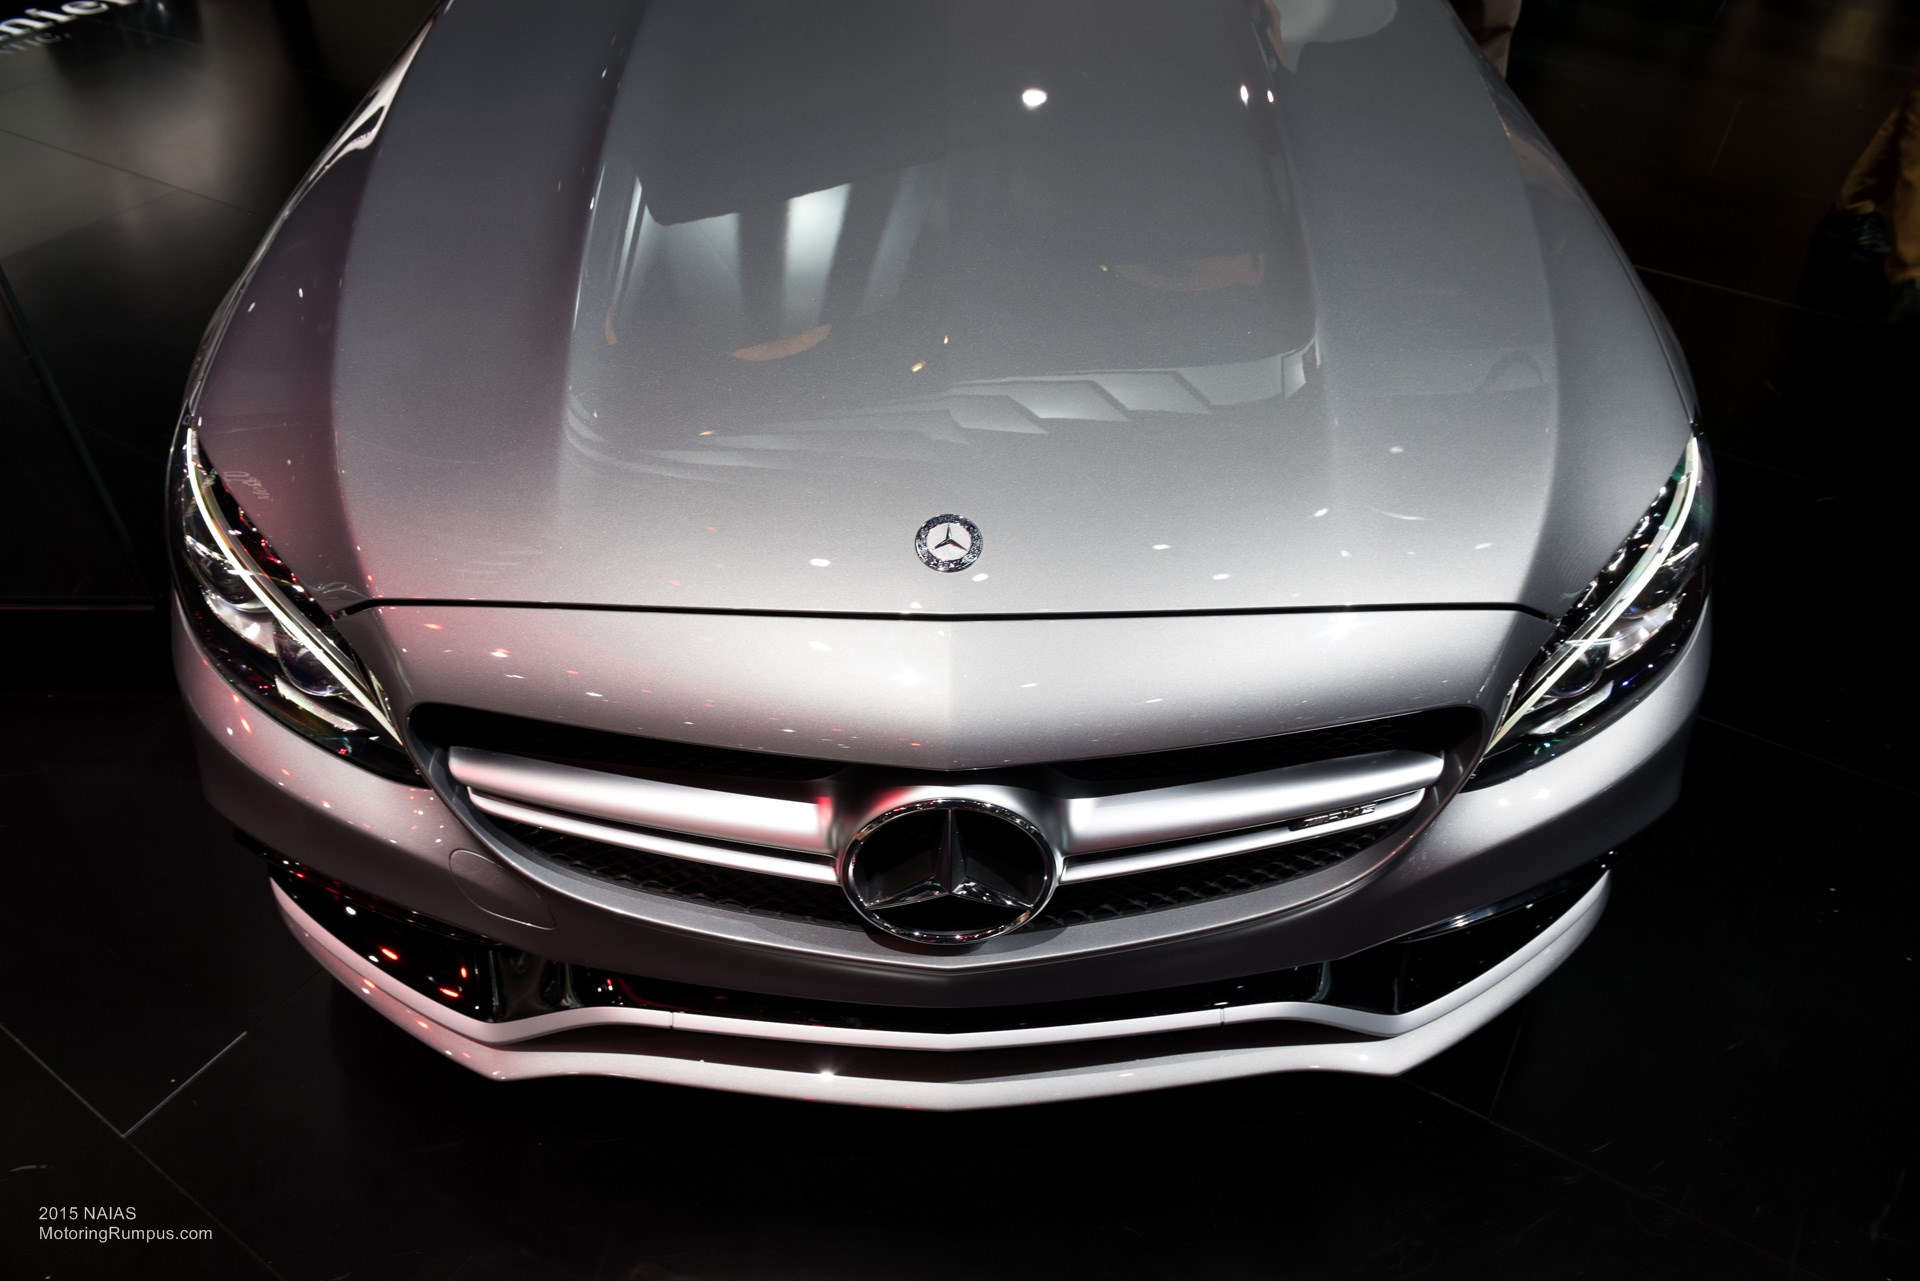 2015 Naias Mercedes Amg C63 S Front End Motoring Rumpus